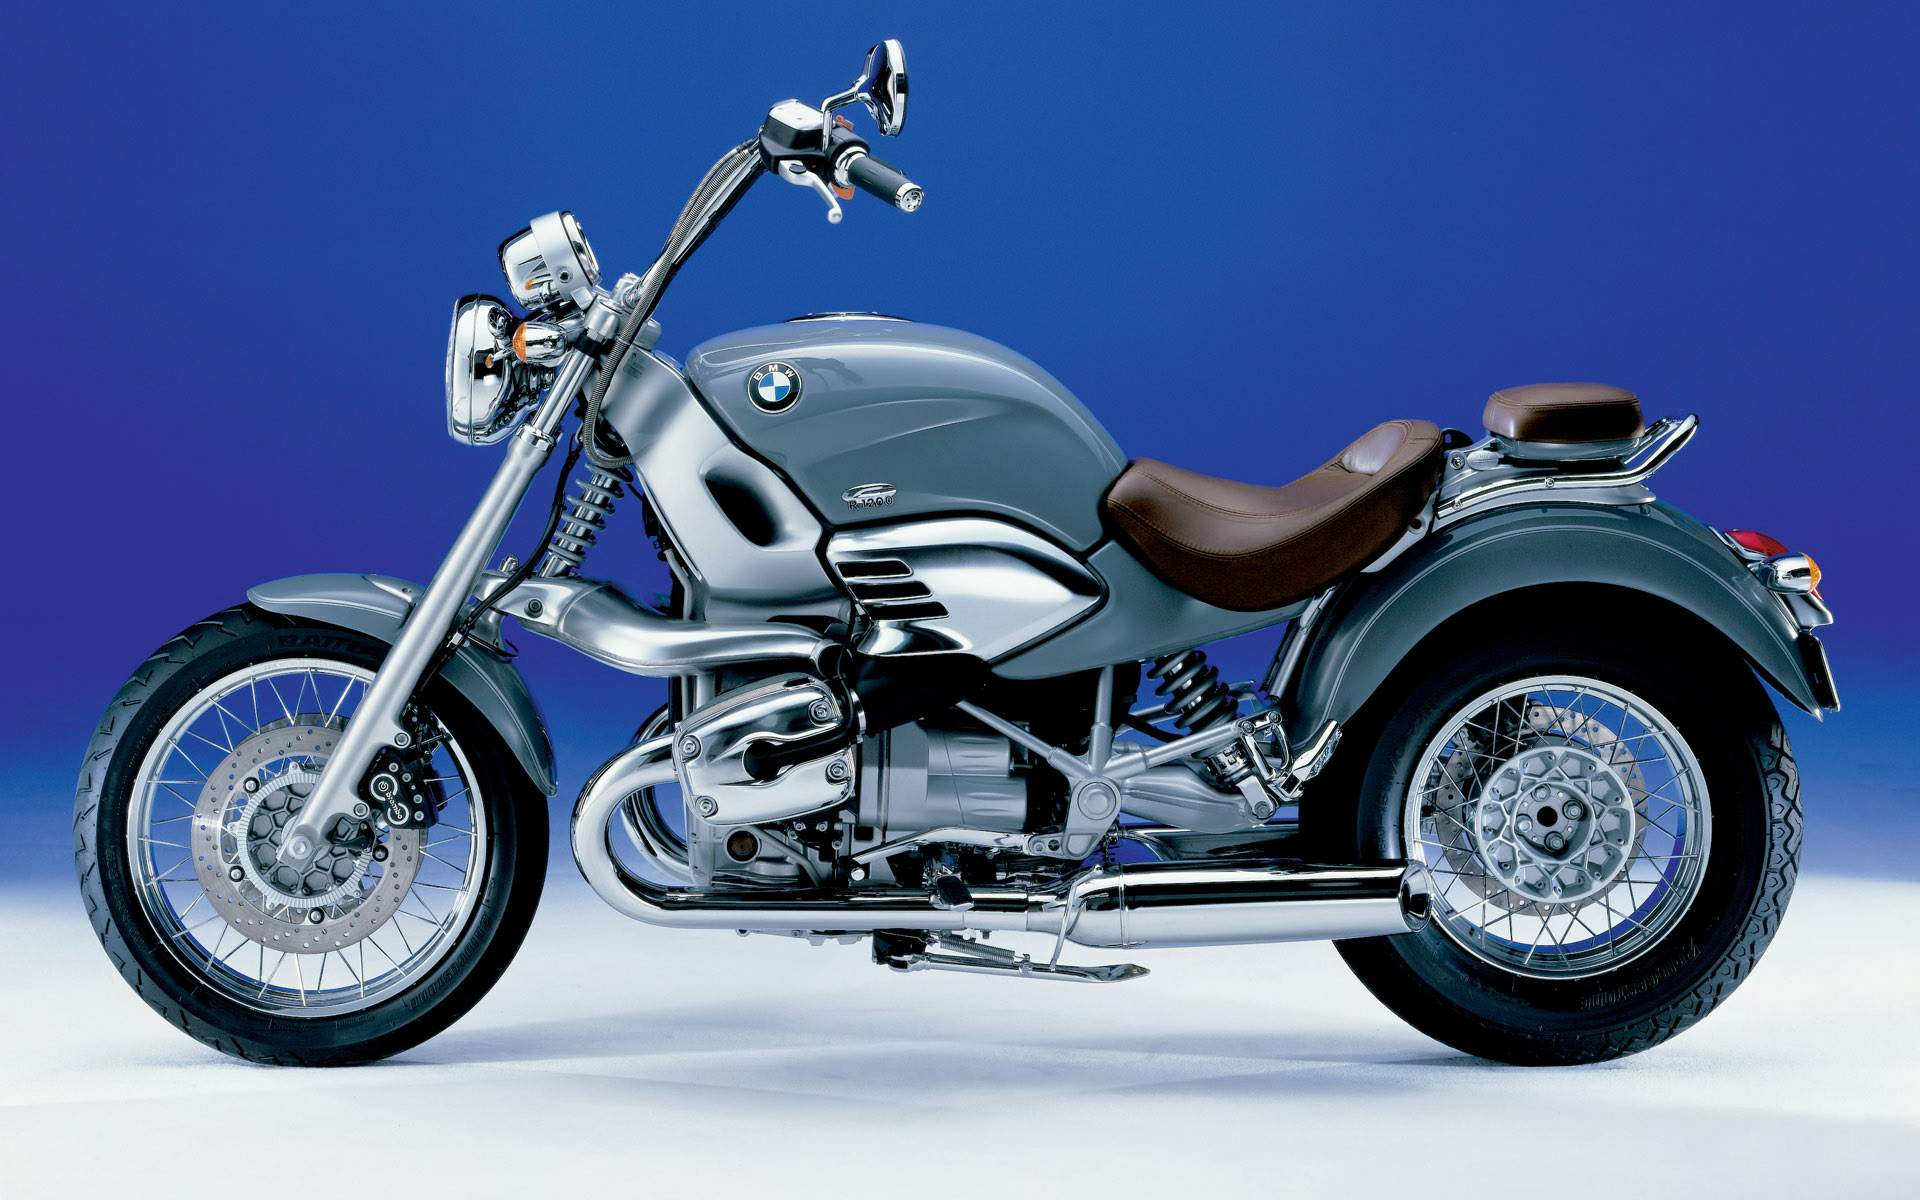 bmw r 1200 c specs 2000 2001 autoevolution. Black Bedroom Furniture Sets. Home Design Ideas